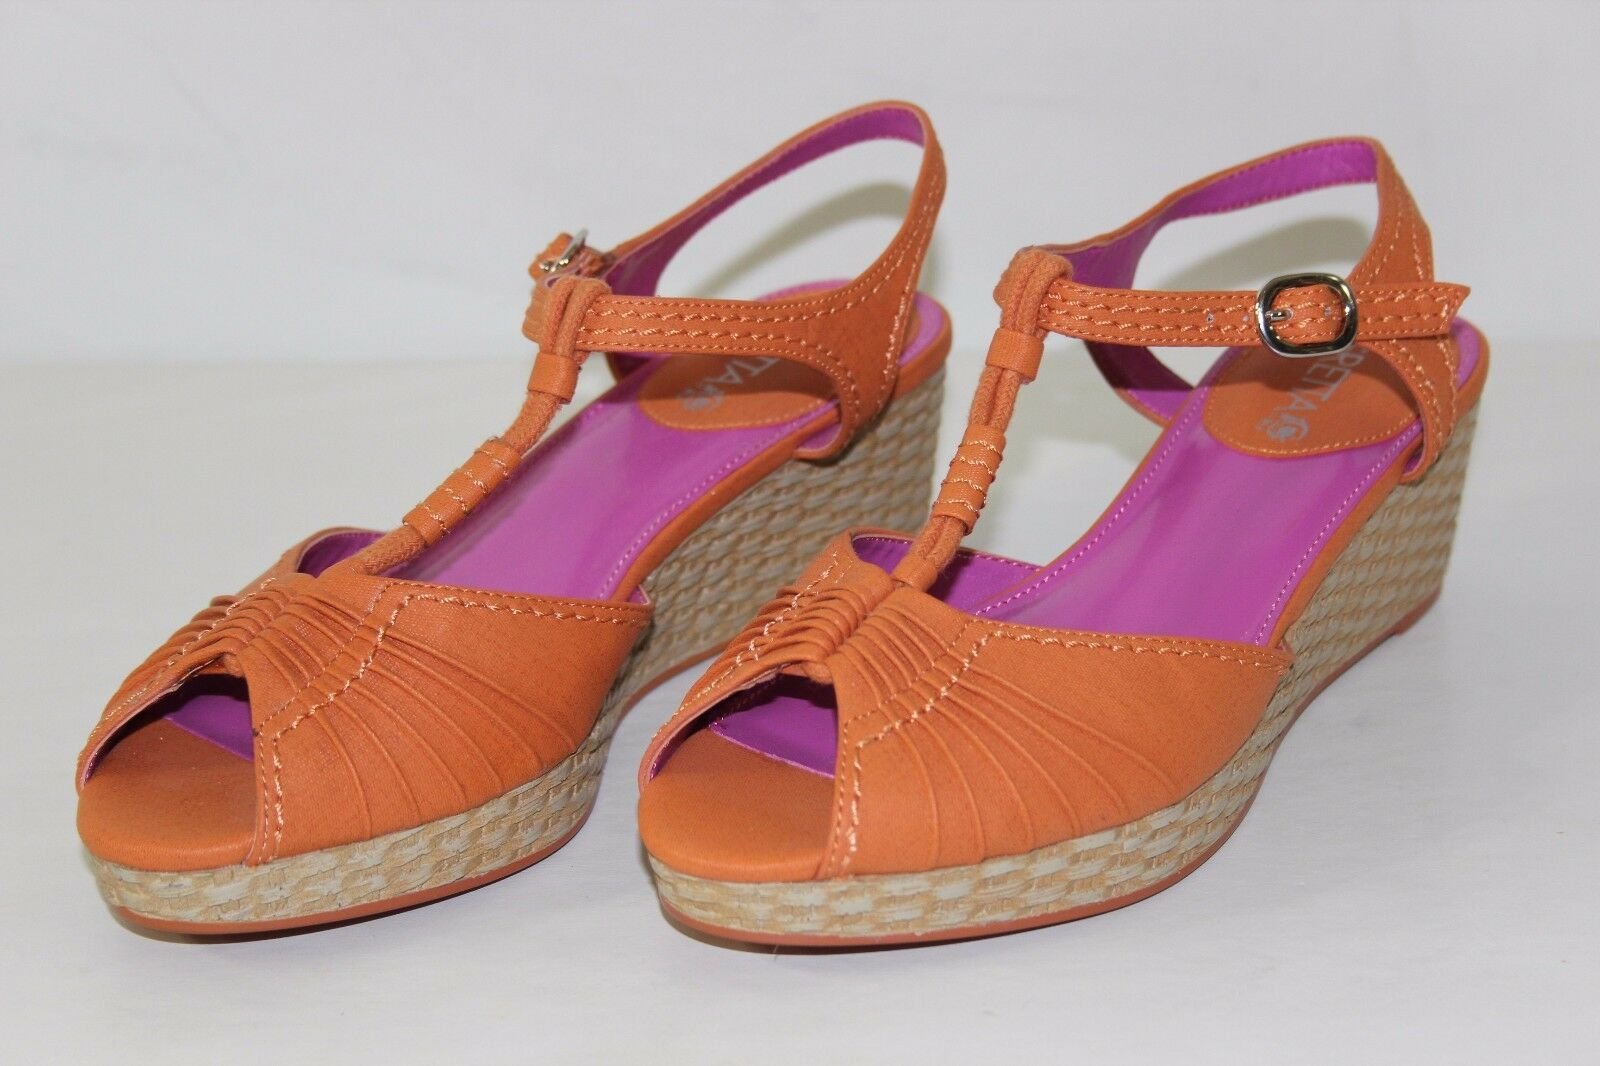 FREE SHIPPING Gretta Gateway Womens Sz 7 M orange Strappy Heels Wedges shoes NEW